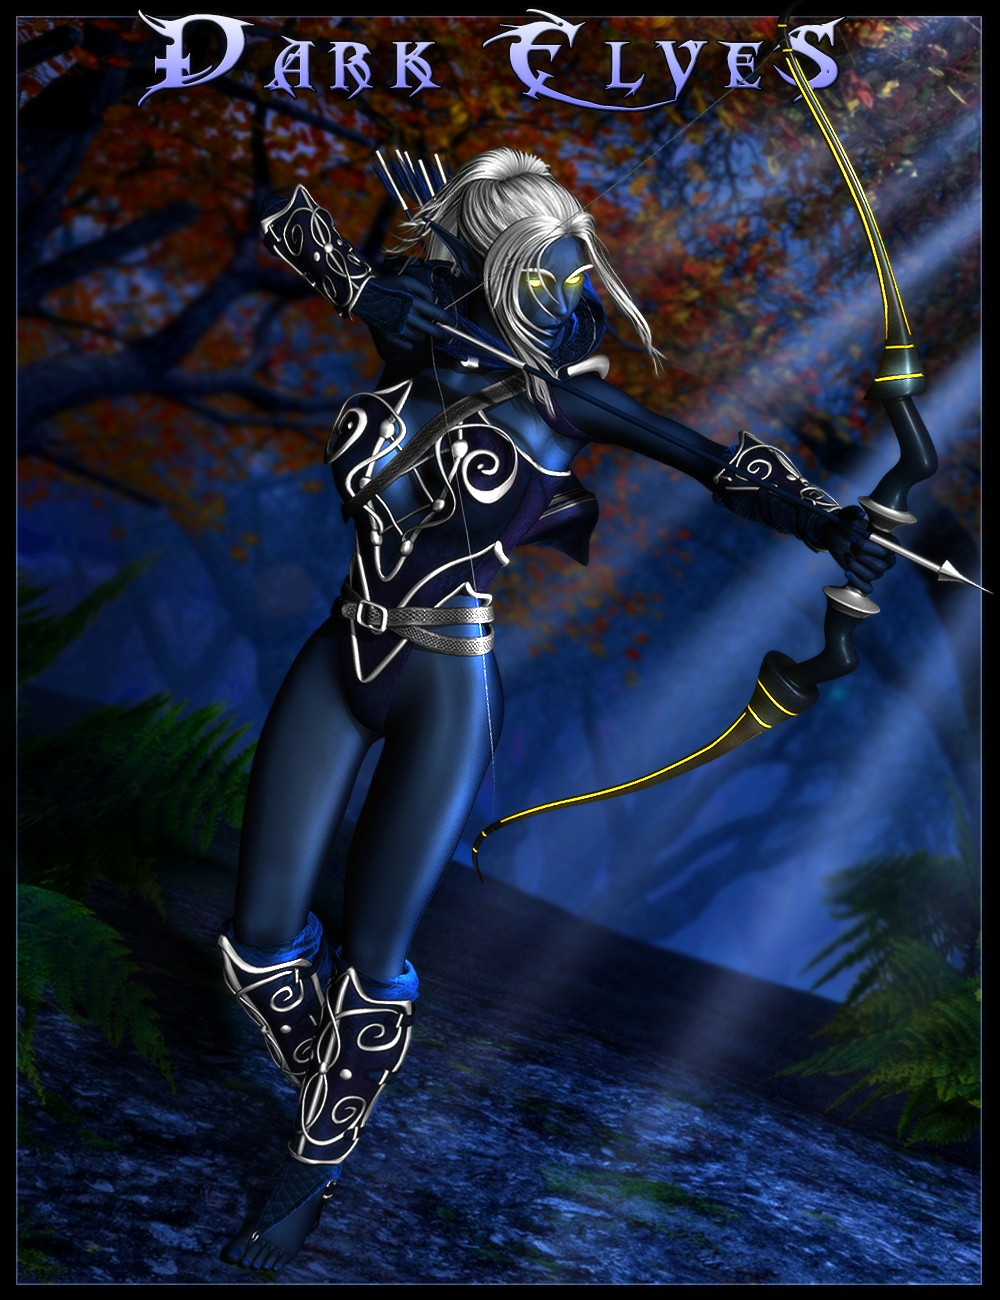 Download Daz Studio 3 For Free Daz 3d Dark Elves For Genesis 2 Female